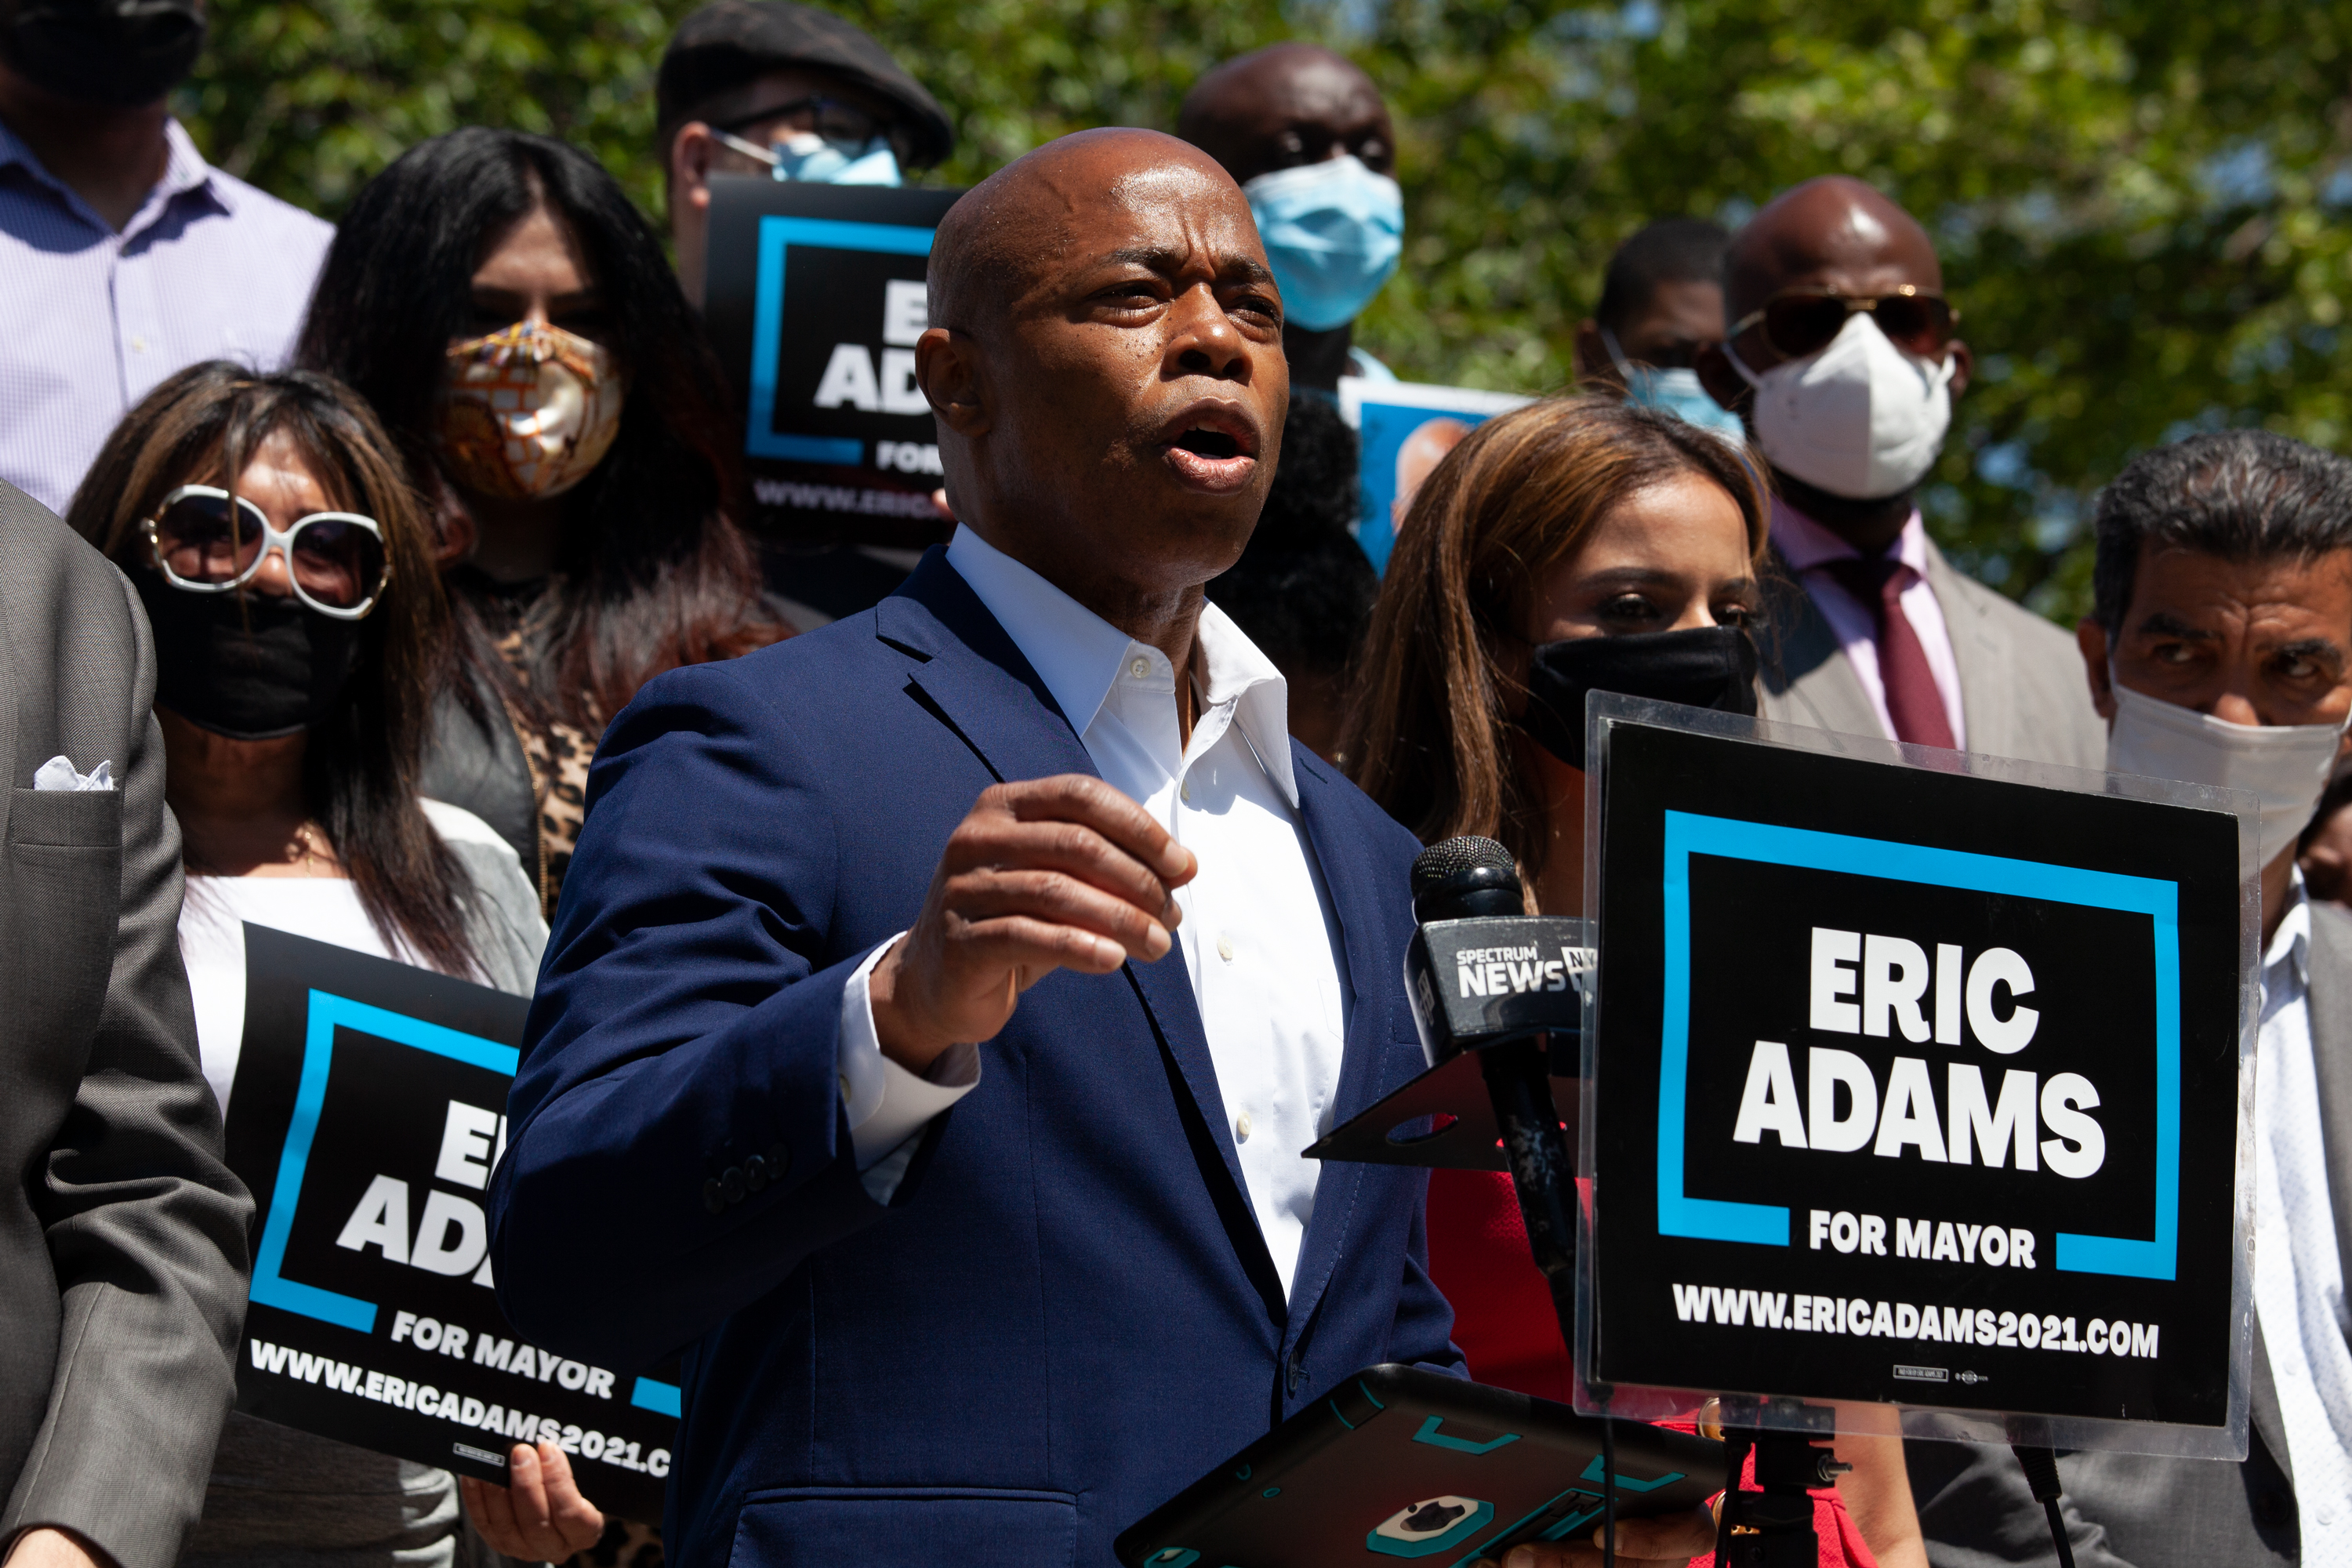 Mayoral candidate and Brooklyn Borough President Eric Adams announces a plan at Cadman Plaza to fight wealth inequality, May 11, 2021.